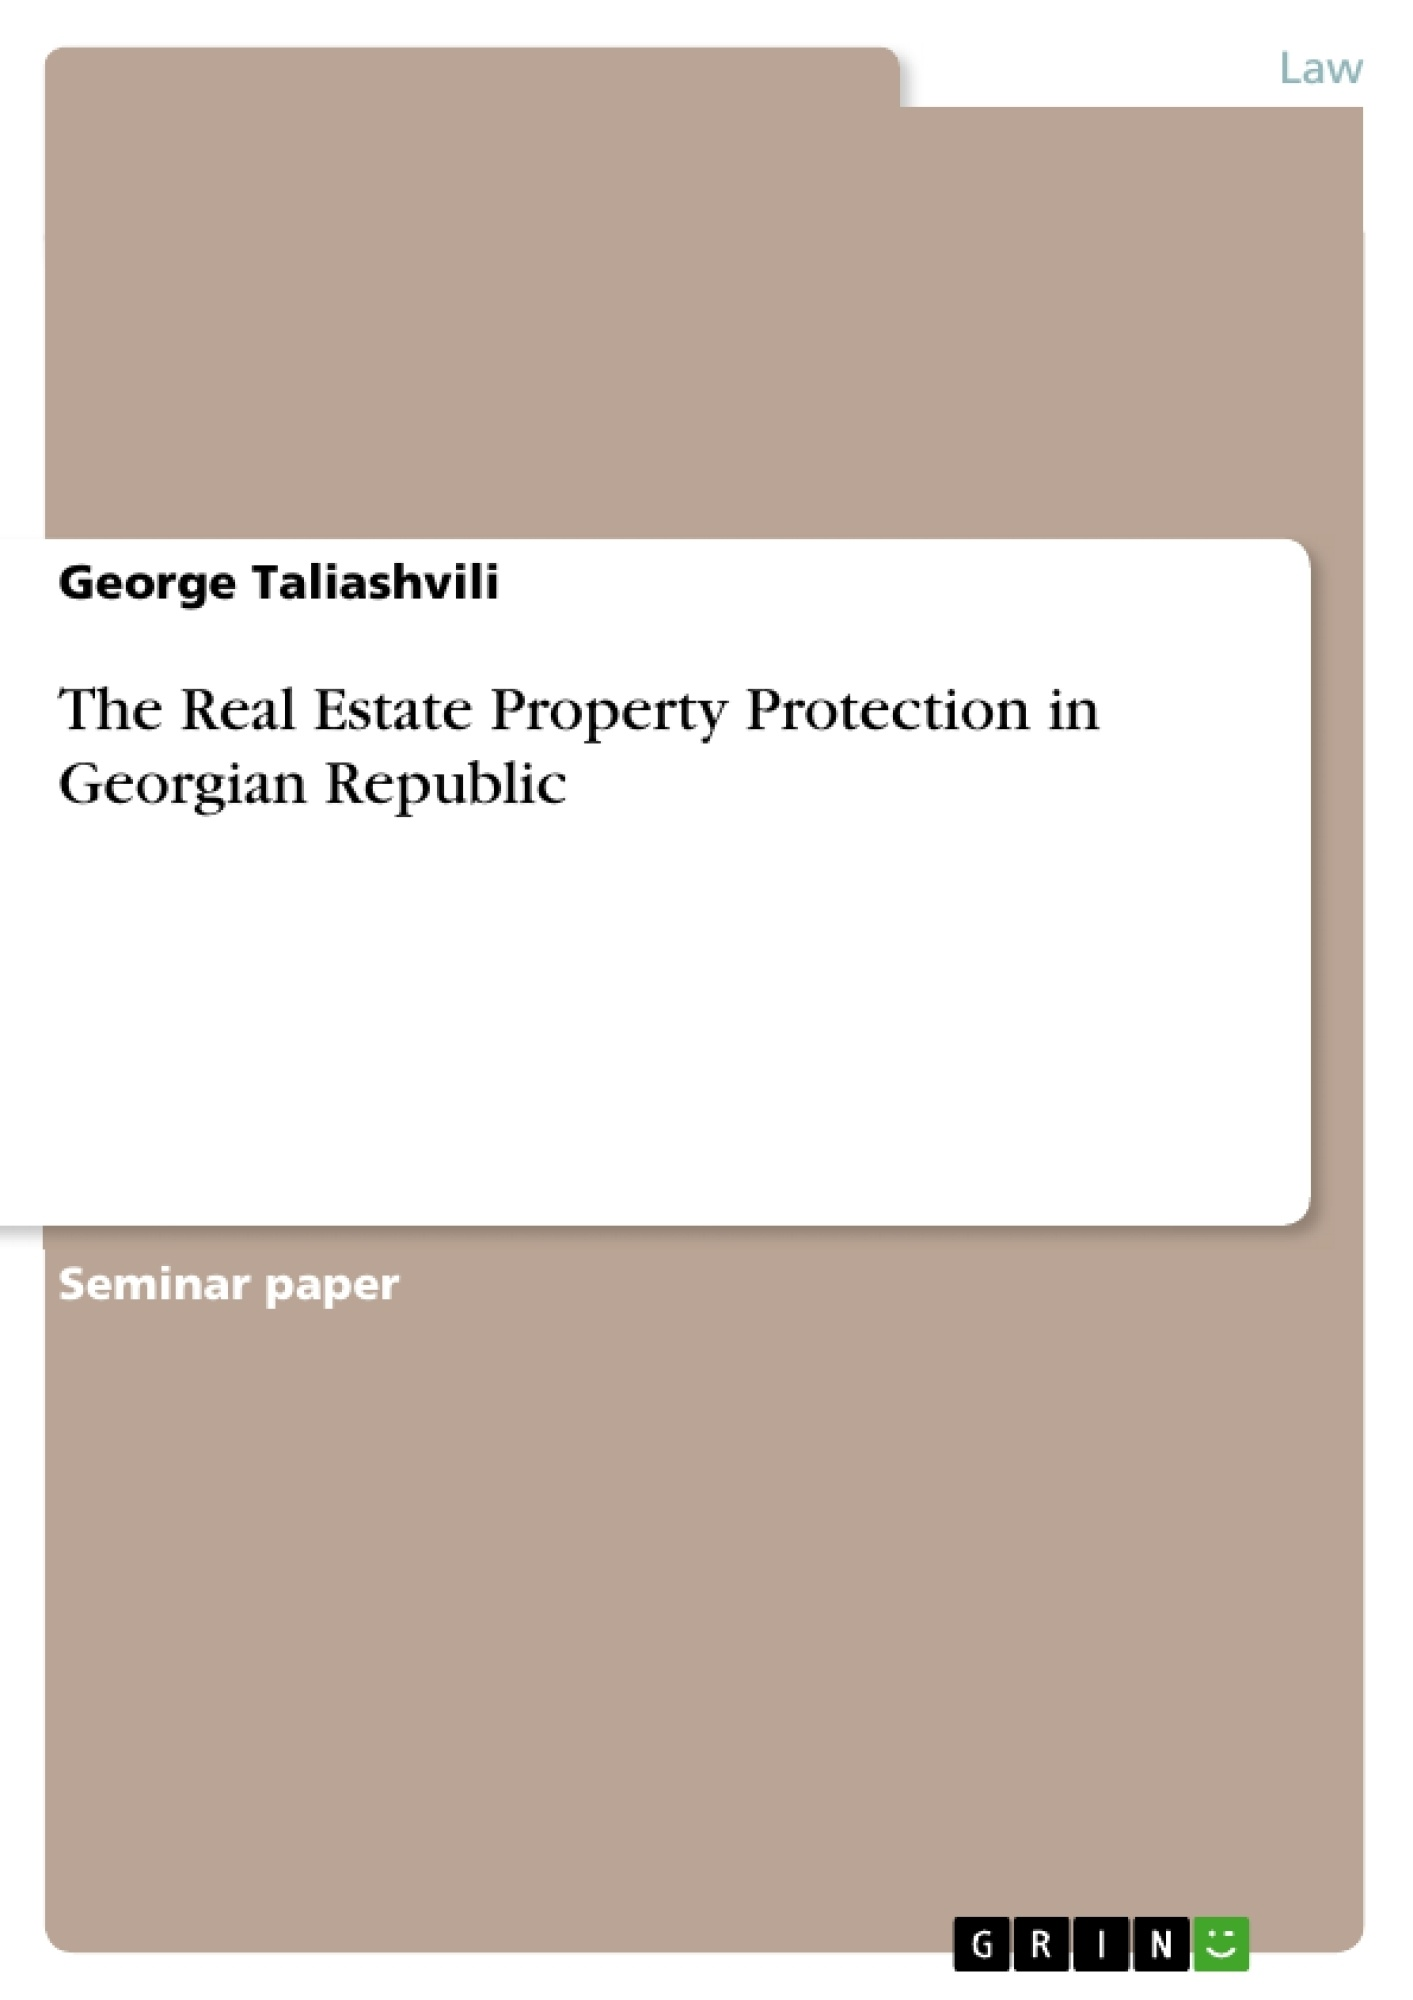 Title: The Real Estate Property Protection in Georgian Republic